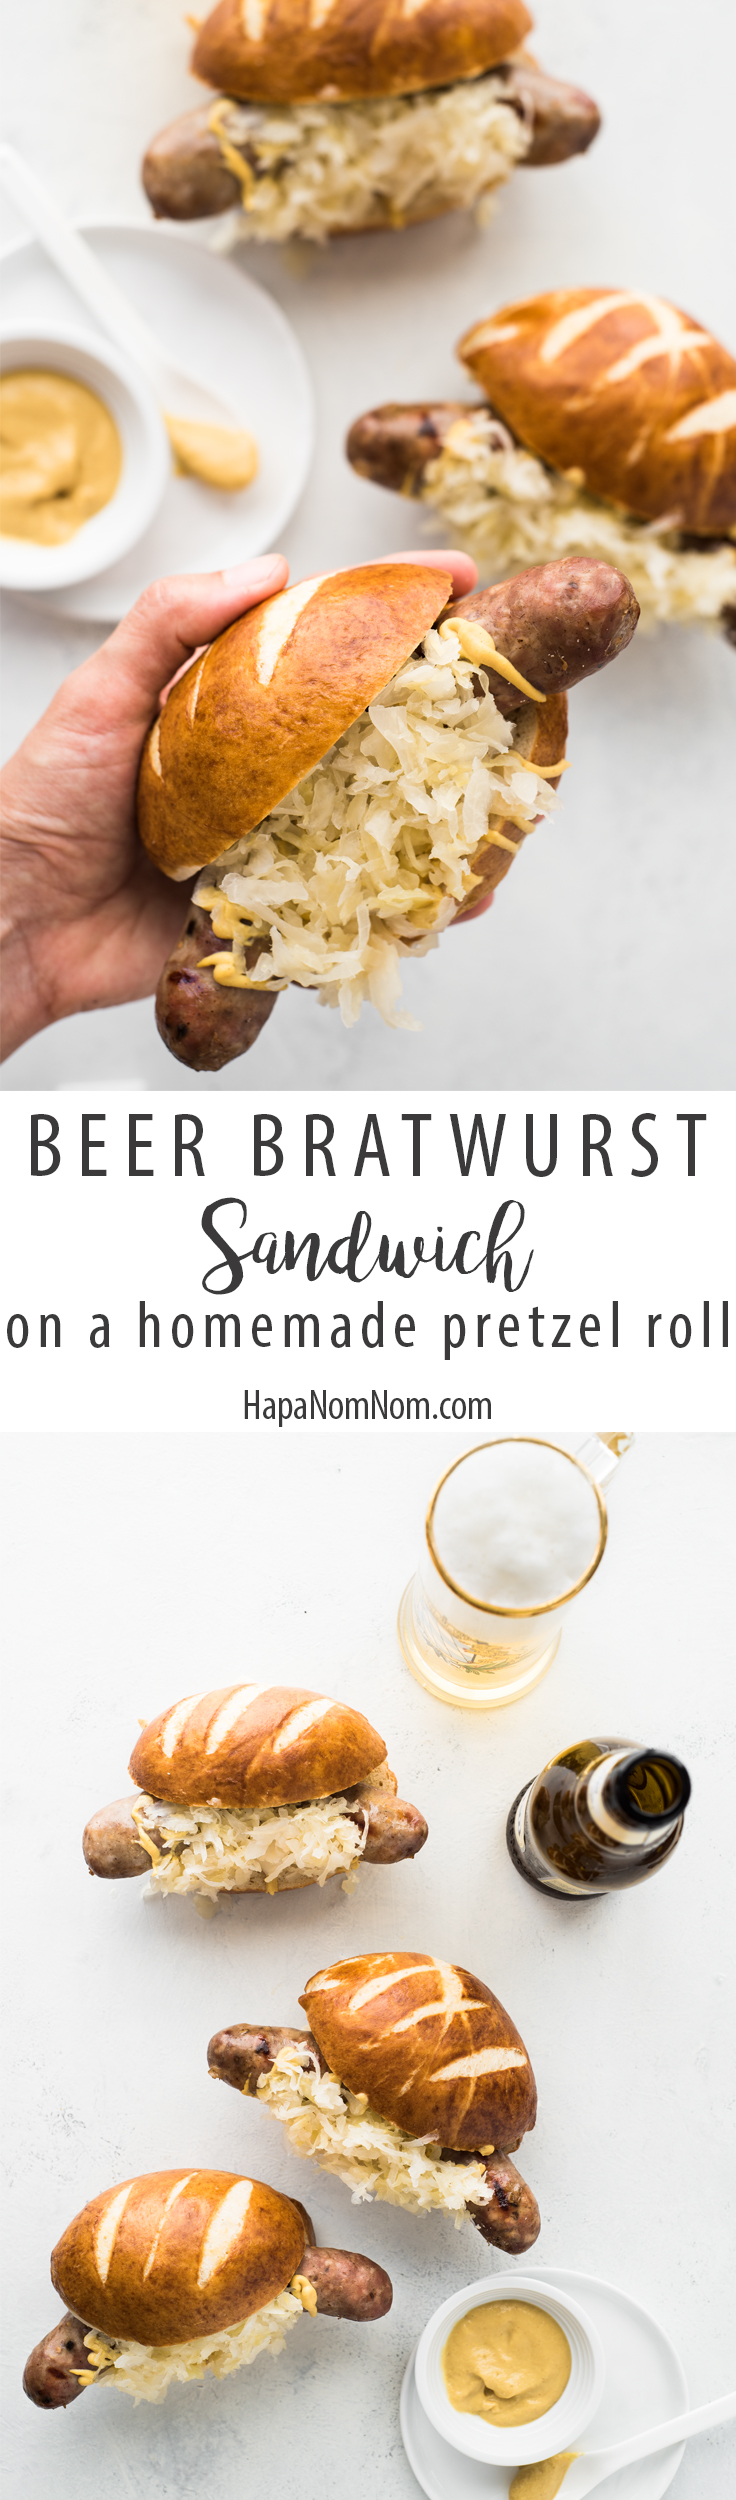 These beer brats are perfect for Oktoberfest, football parties, or just a damn good dinner!